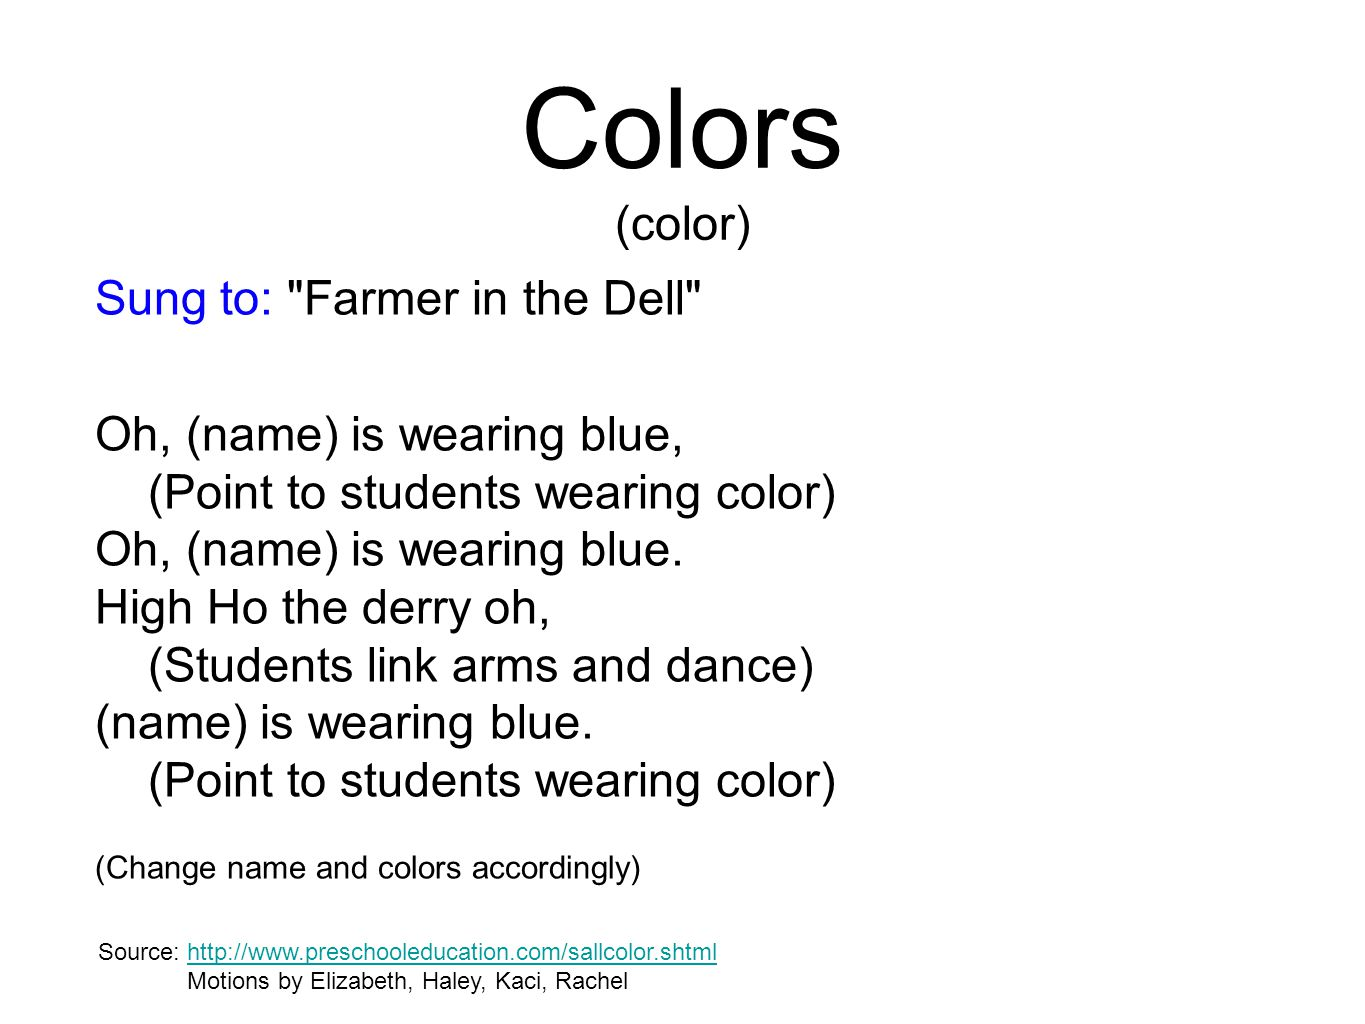 Colors (color) Sung to: Farmer in the Dell